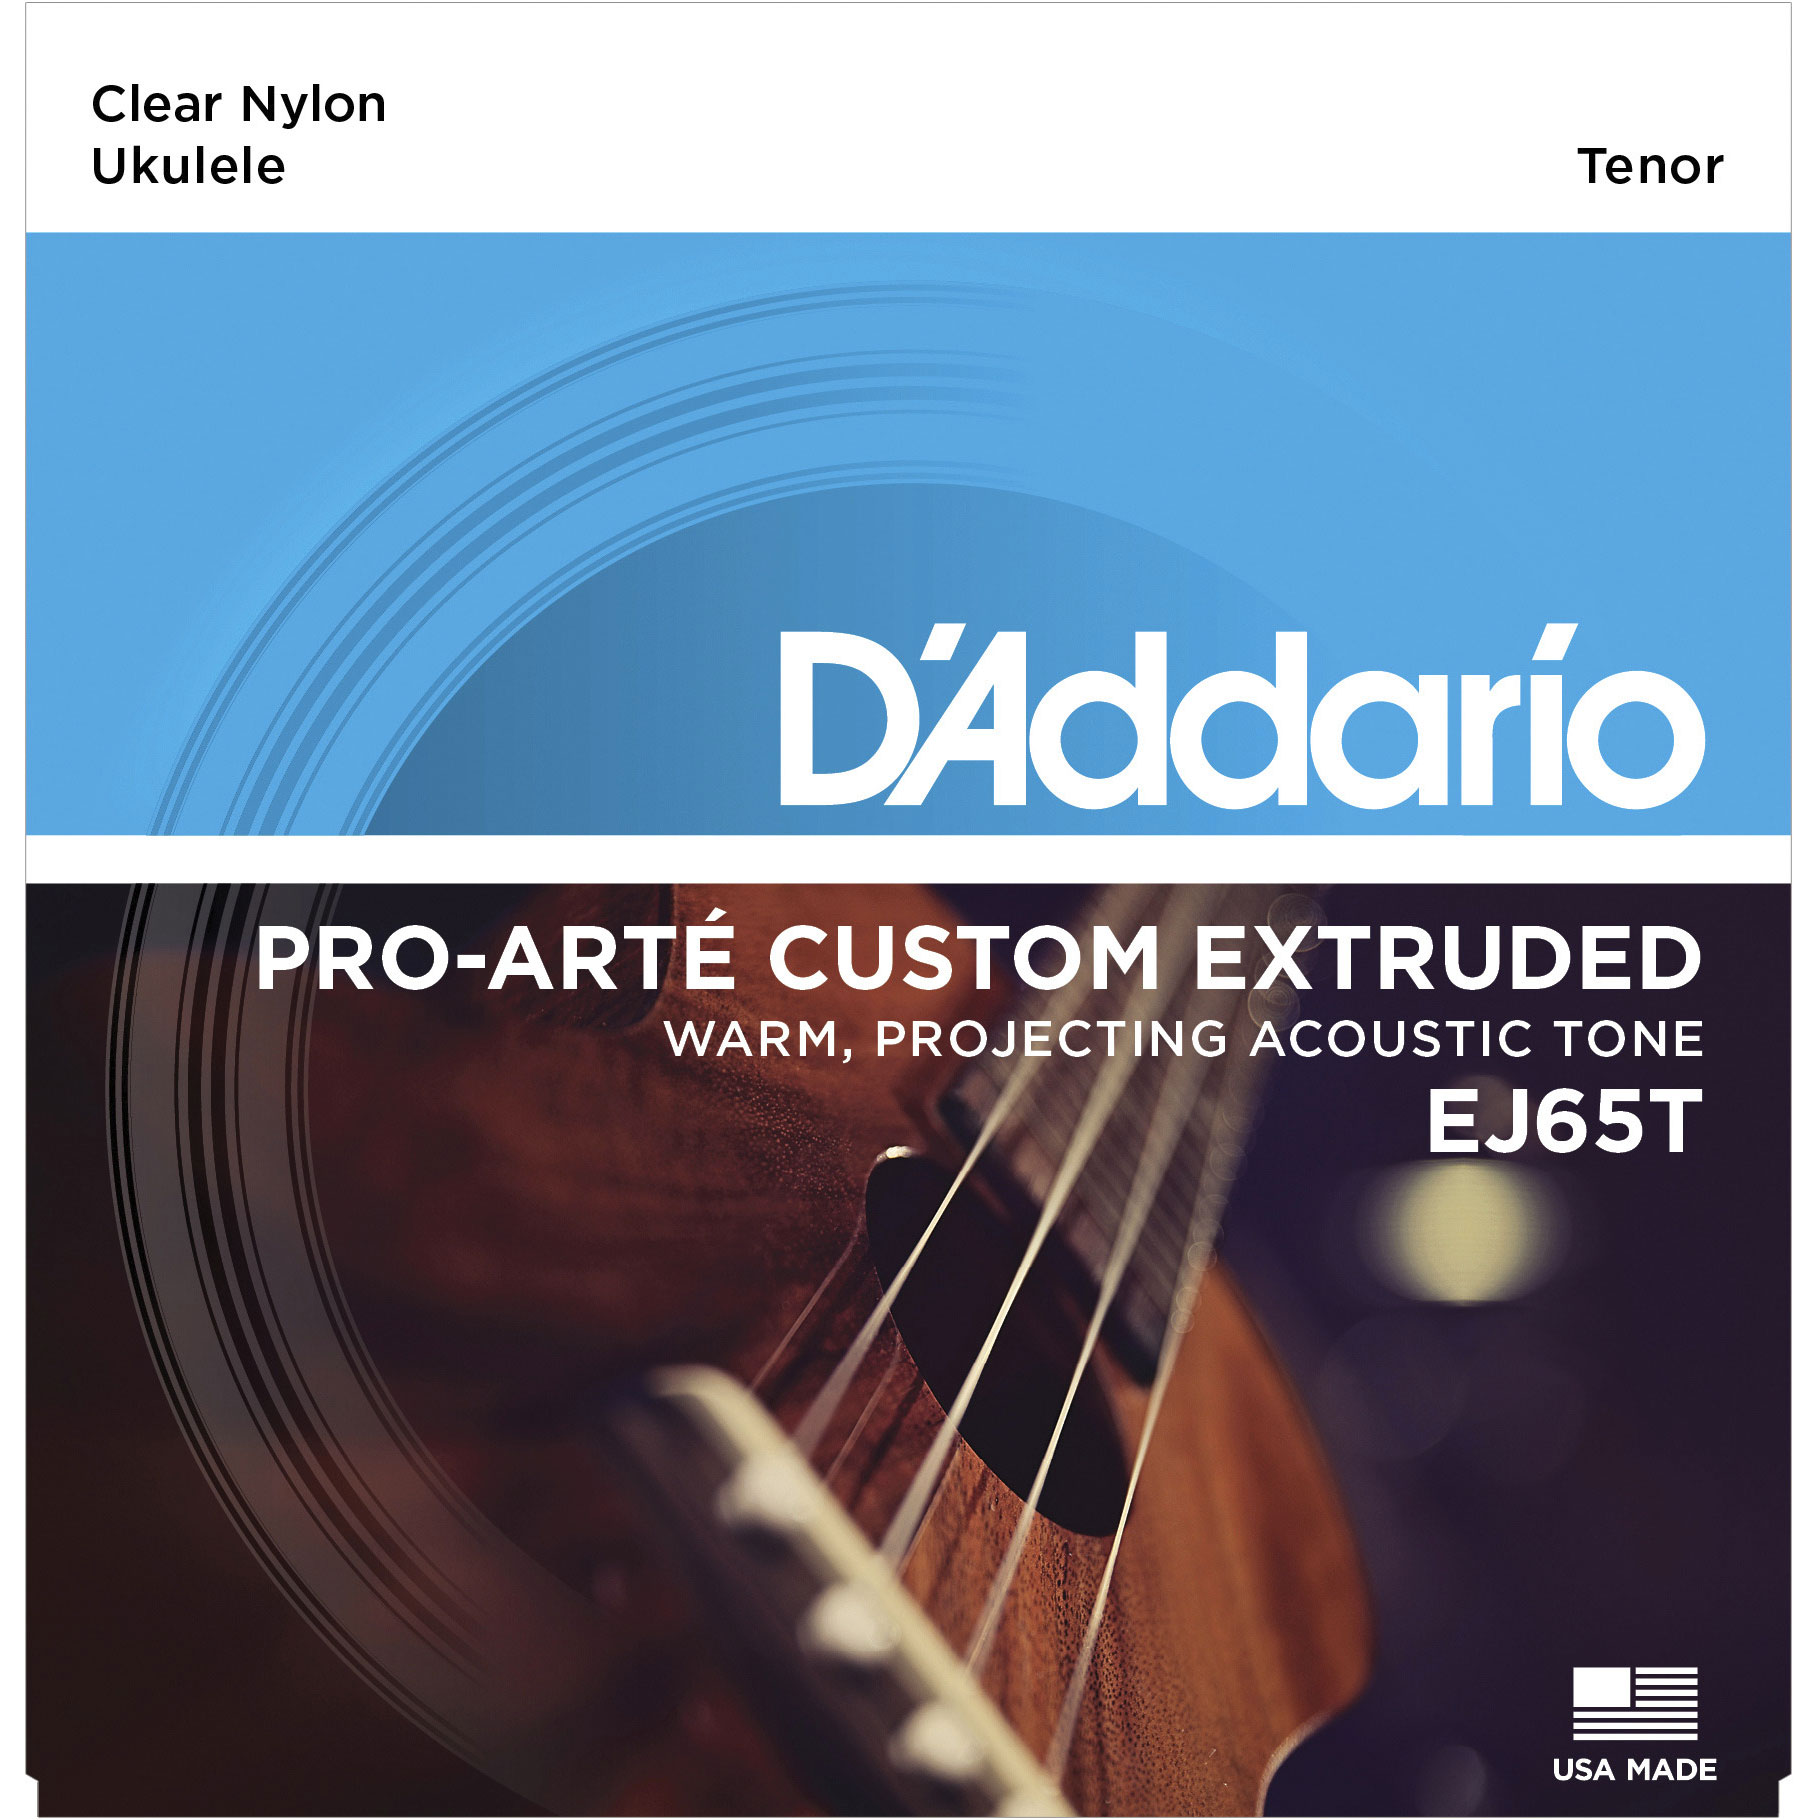 DADDARIO EJ65T PRO-ARTÉ CUSTOM EXTRUDED NYLON UKULELE STRINGS, TENOR